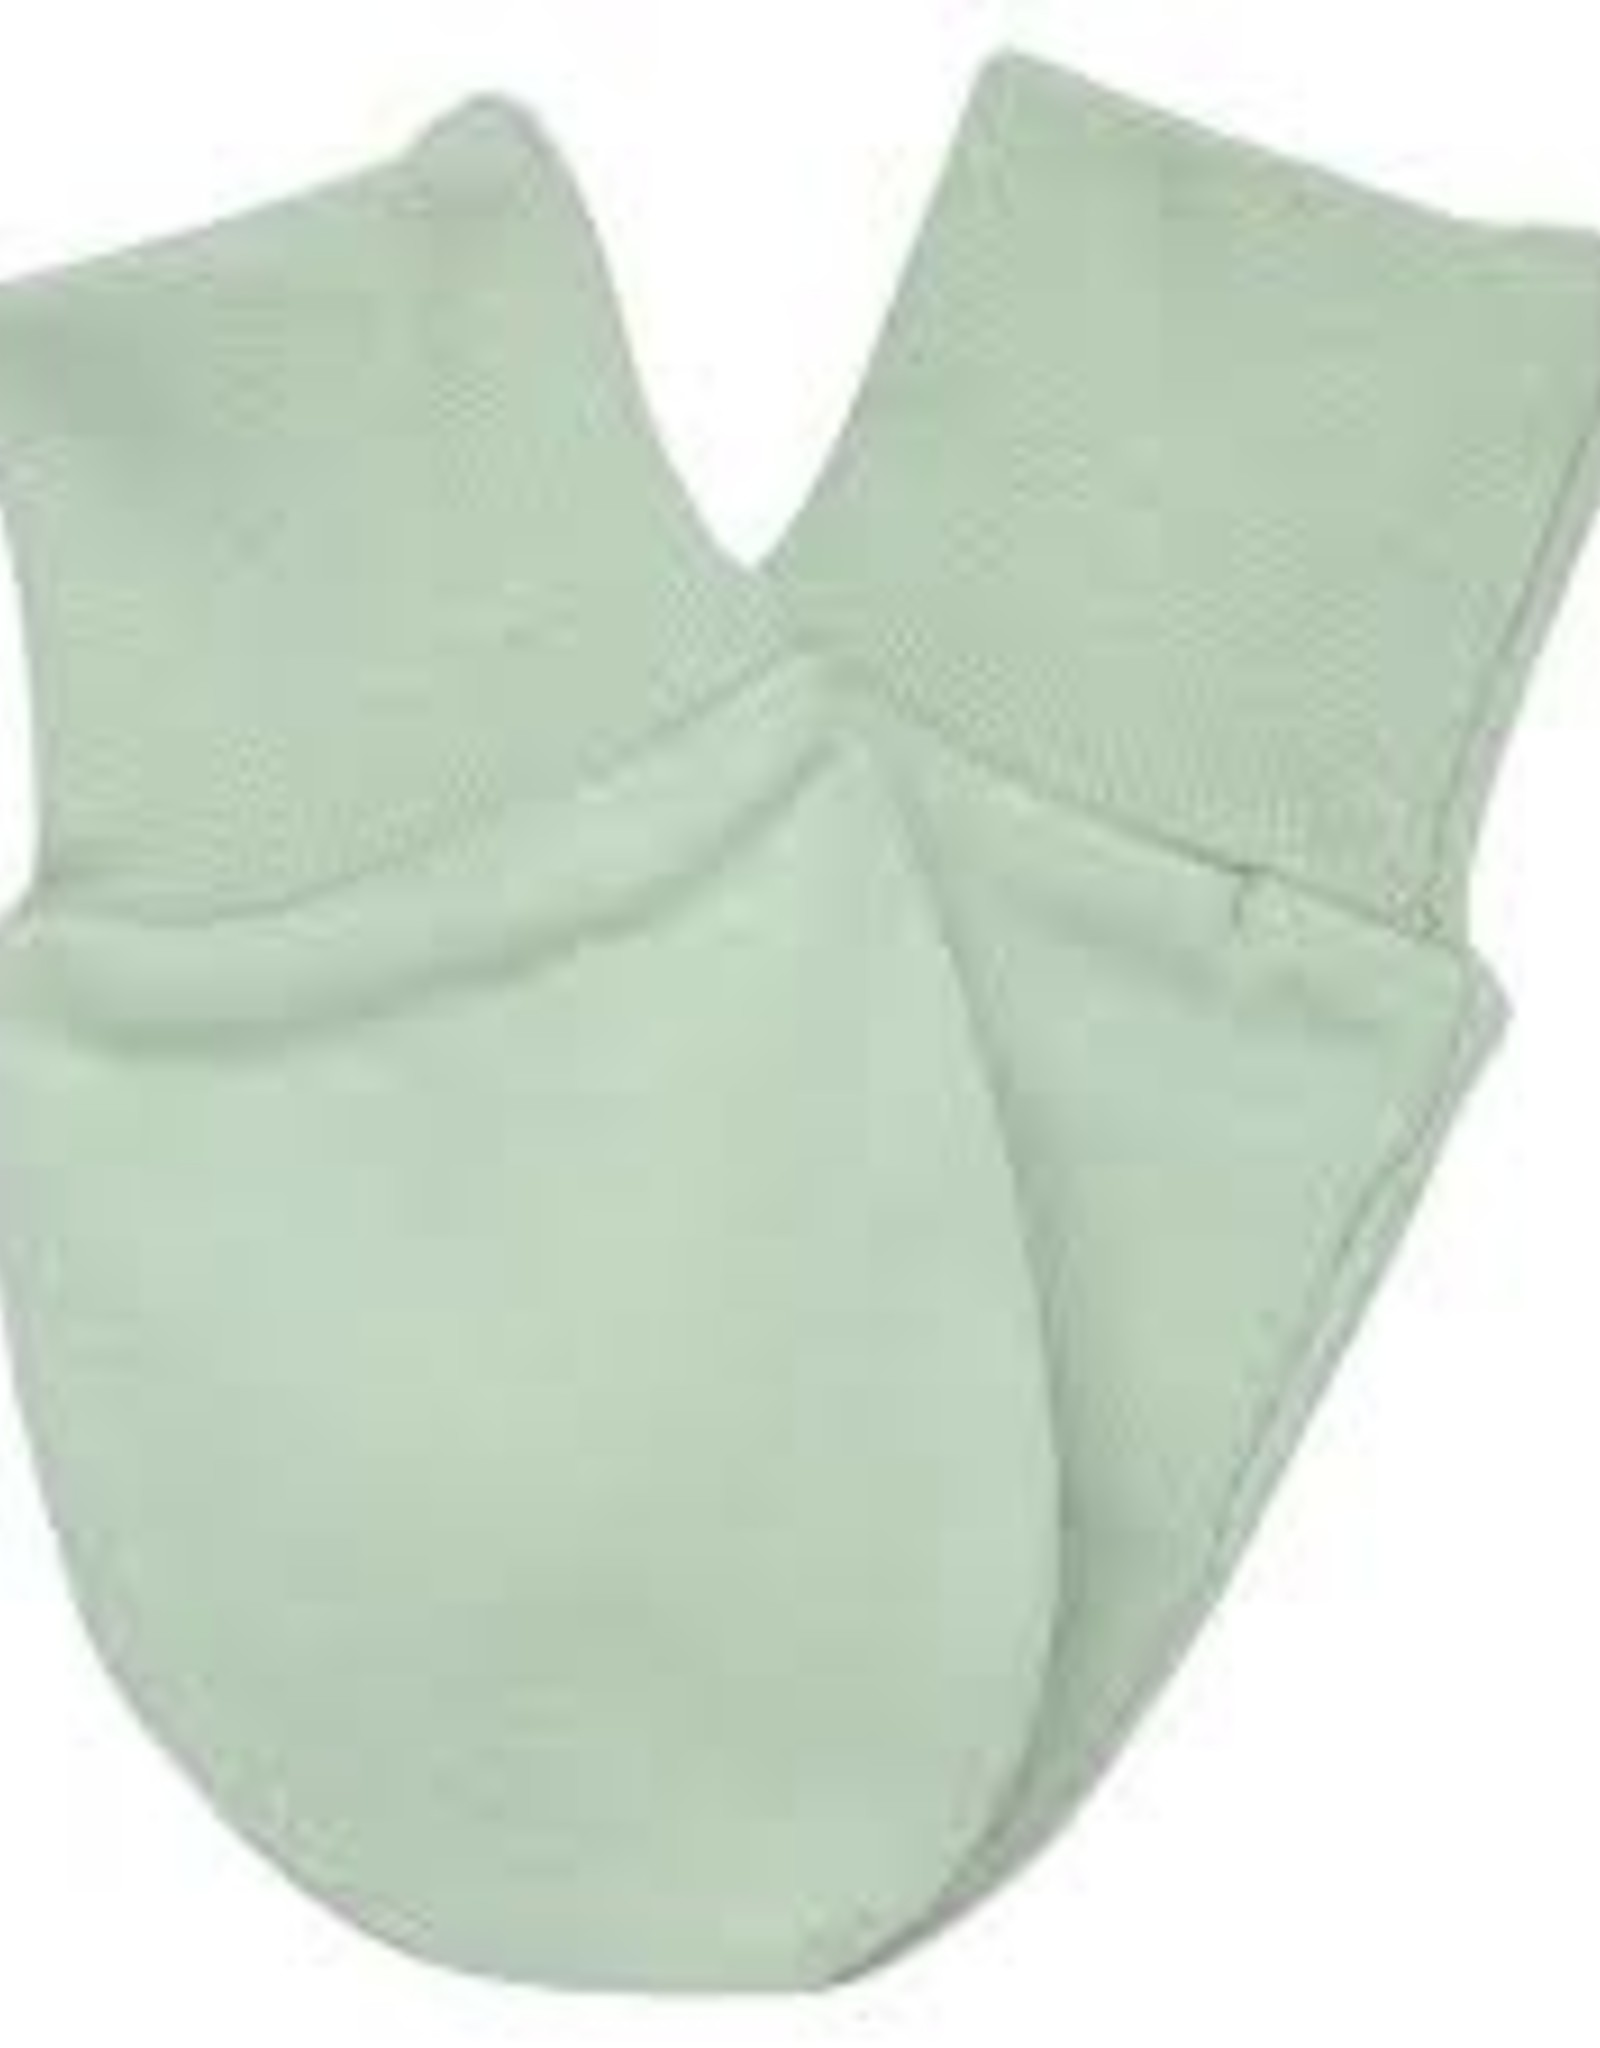 Baby Mittens Green